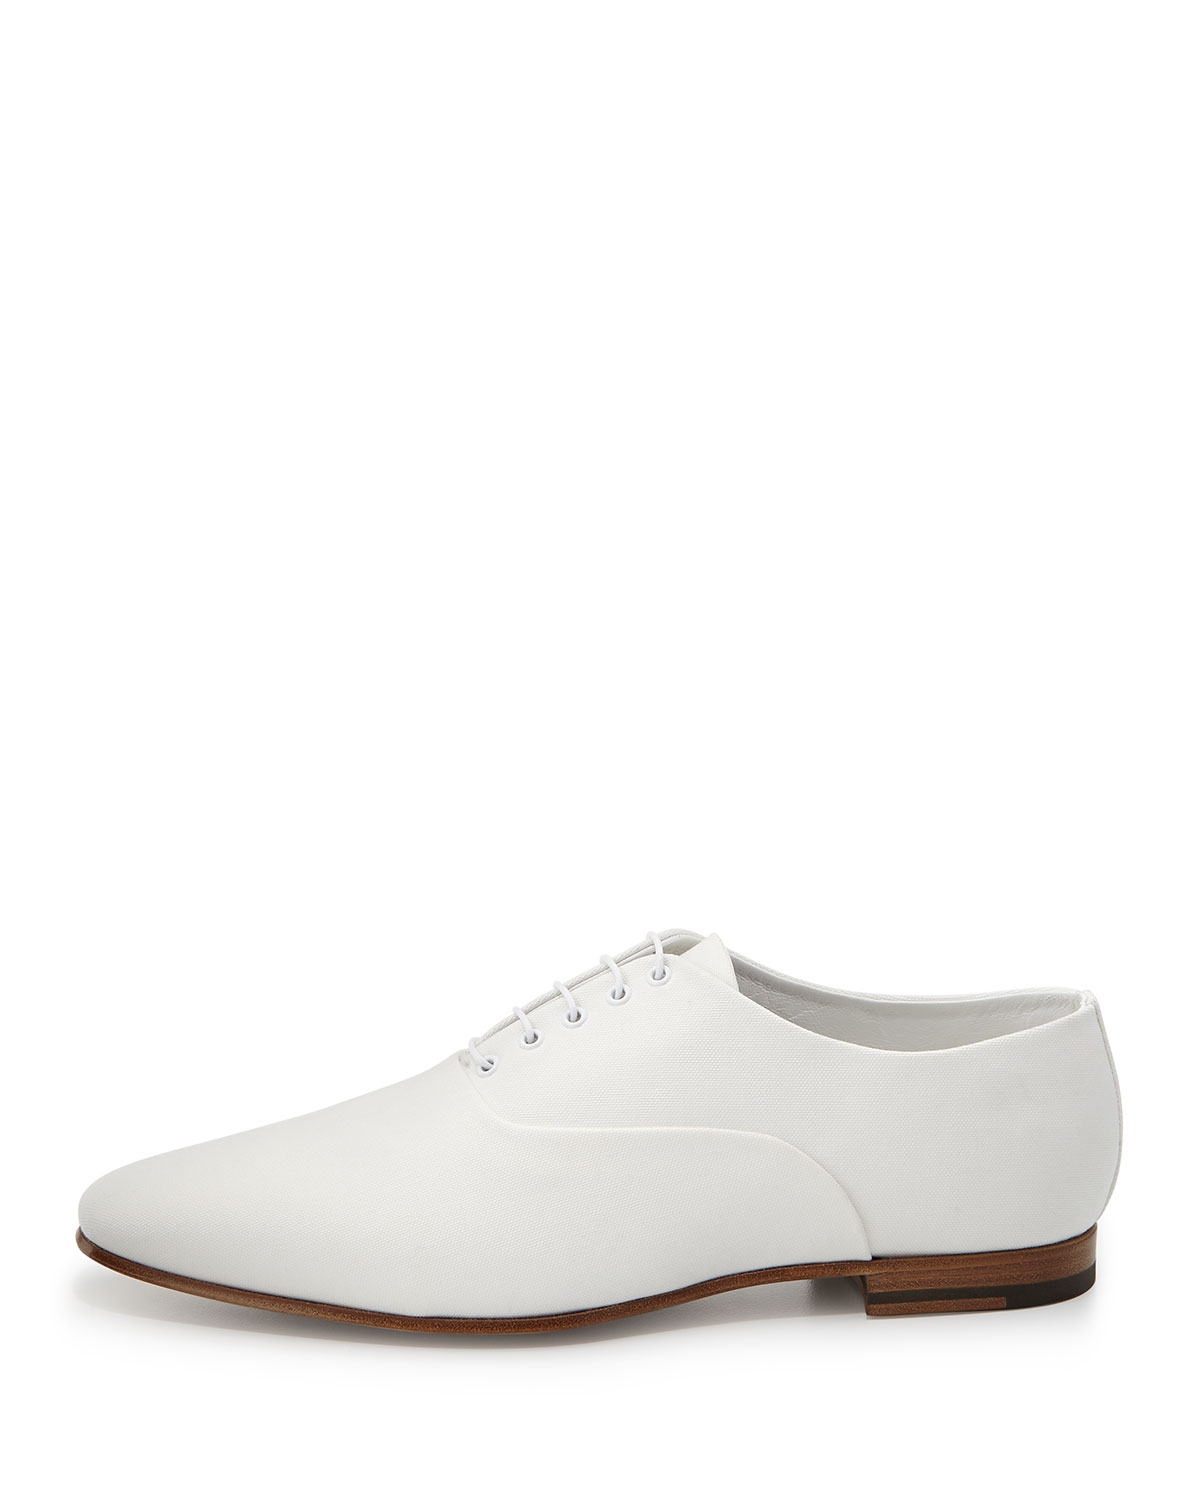 laurent lulu canvas oxford shoe white in white for